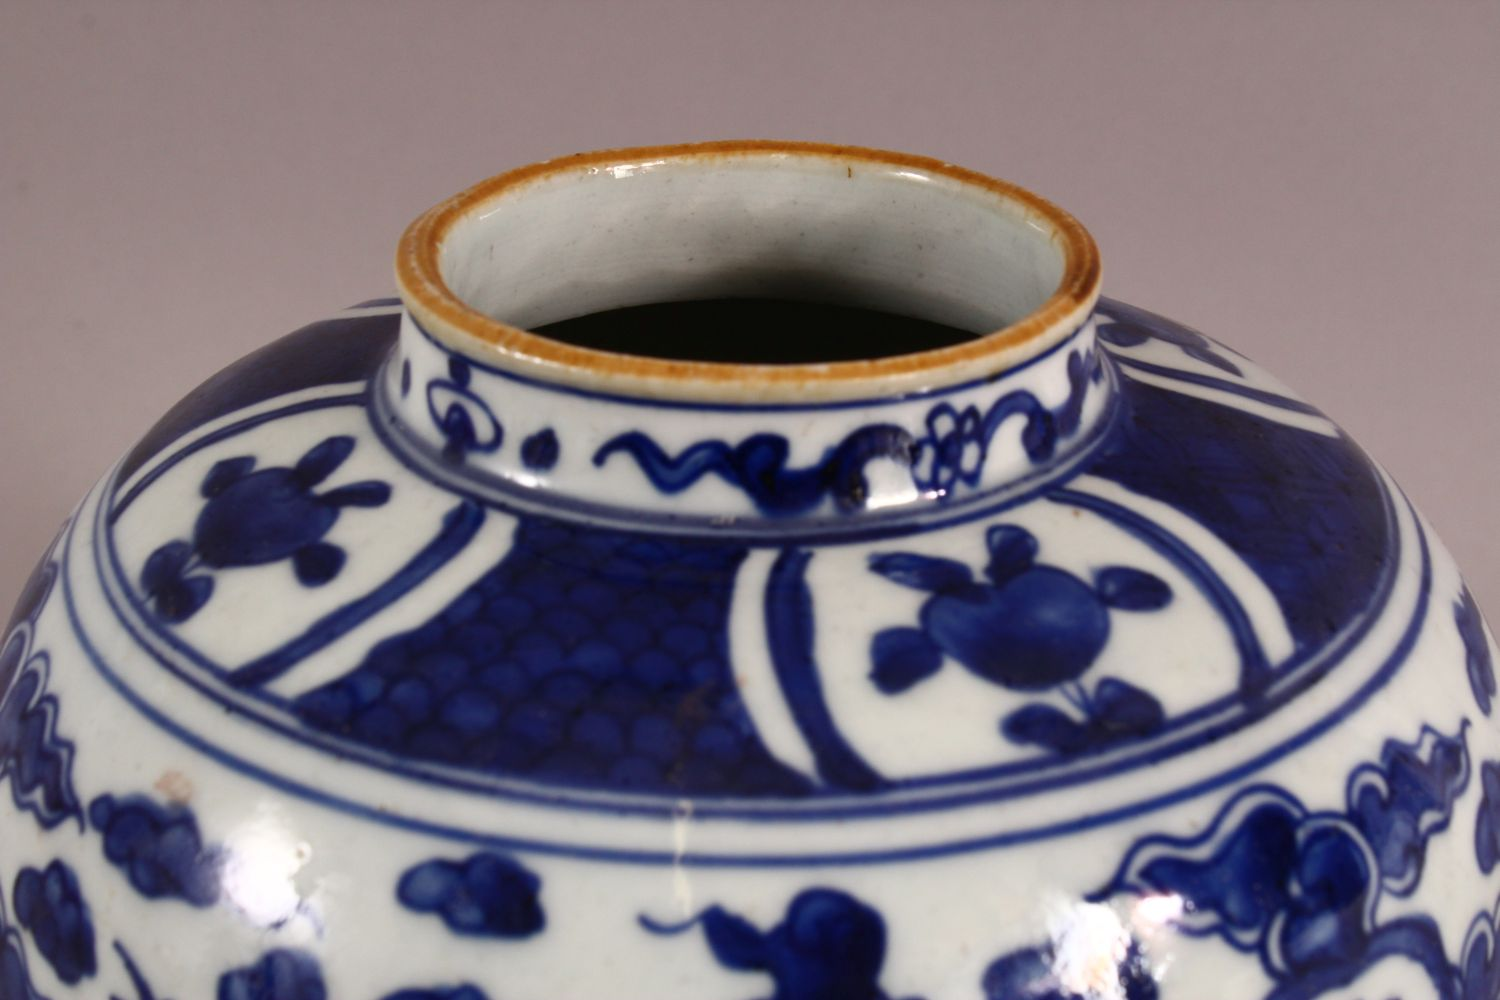 A CHINESE BLUE & WHITE PORCELAIN GINGER JAR, decorated with birds and symbols amongst clouds, rabbit - Image 5 of 7